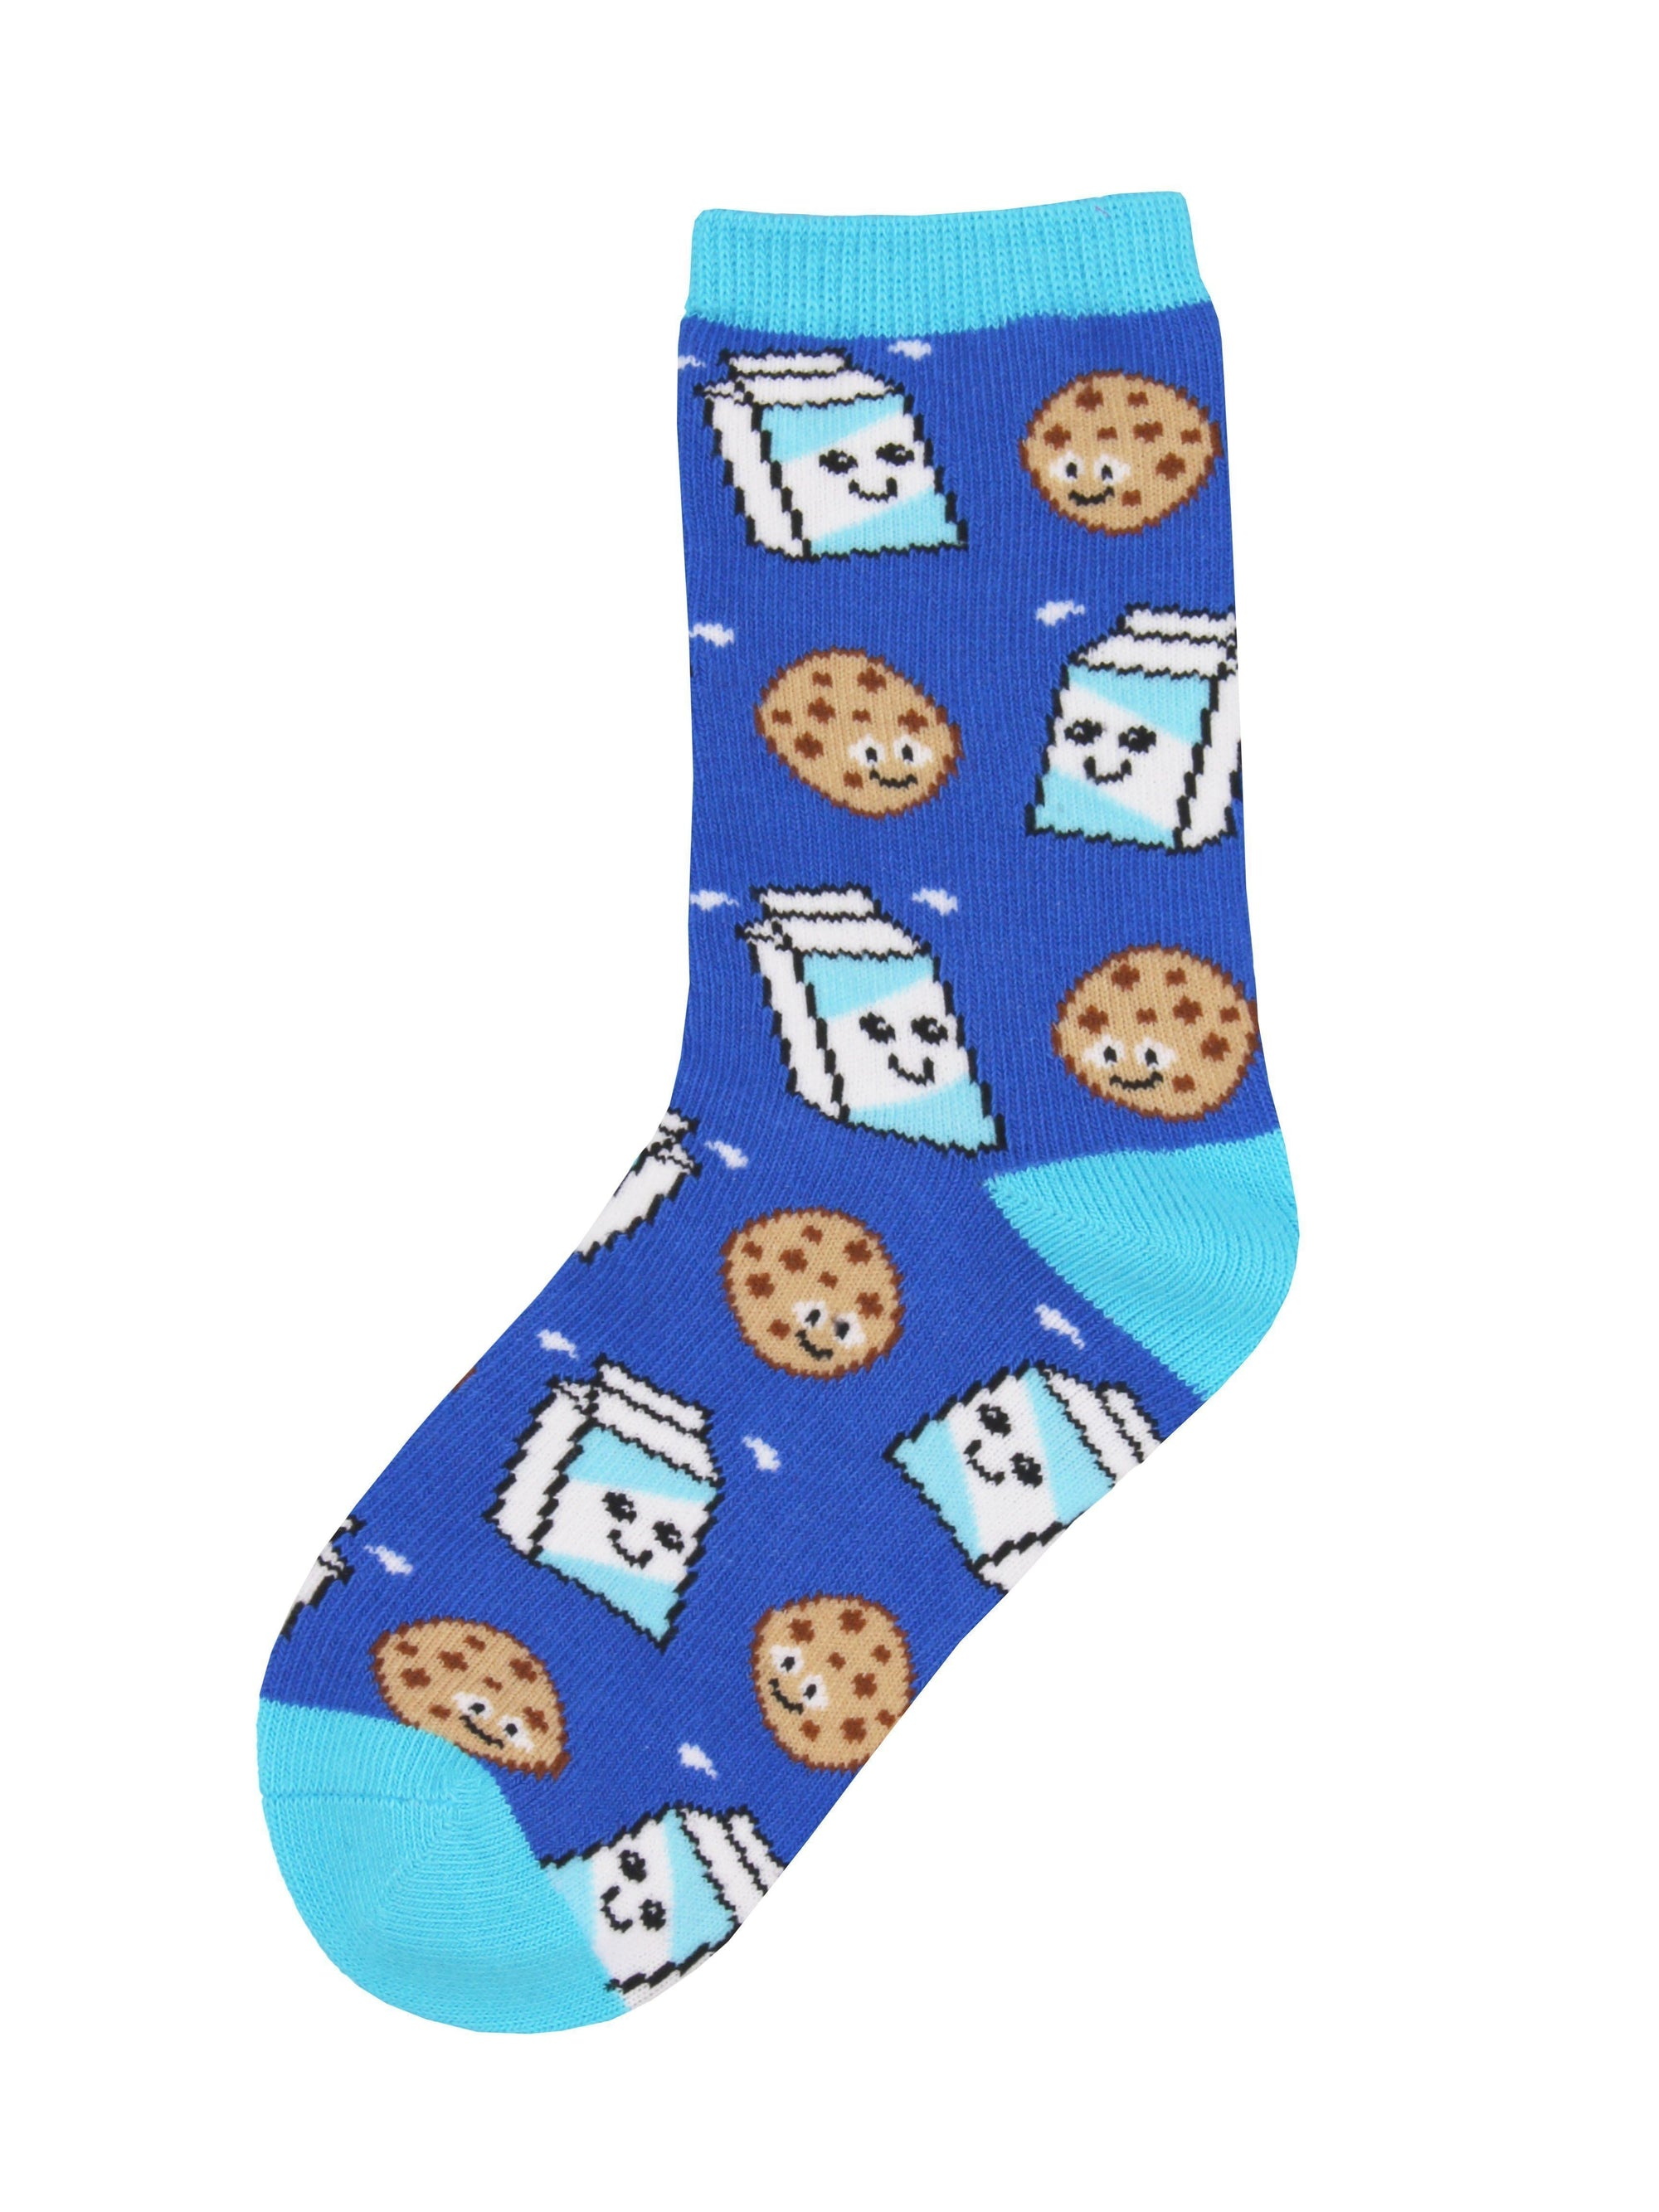 Socksmith - Cookies And Milk Crew Socks | Kids' - Knock Your Socks Off